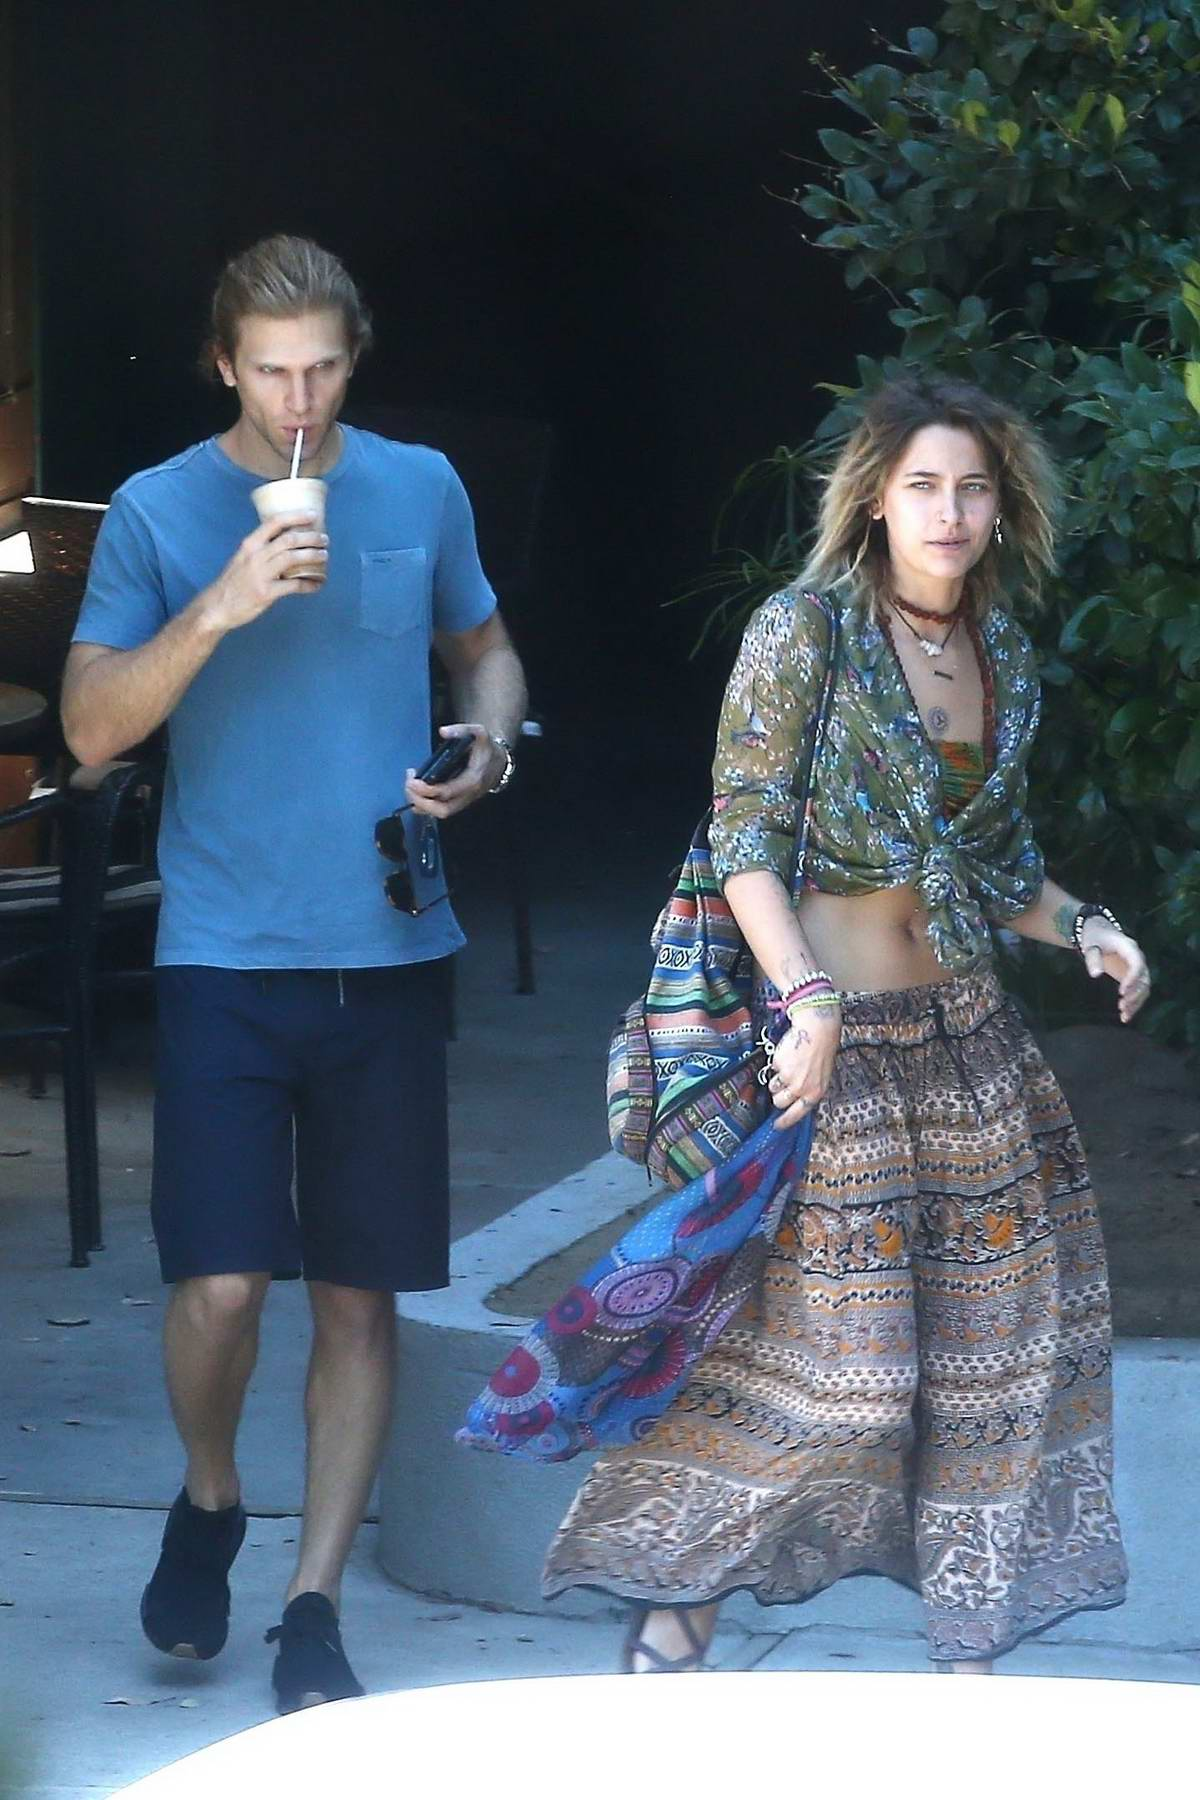 Paris Jackson grabs coffee with Keegan Allen in Malibu